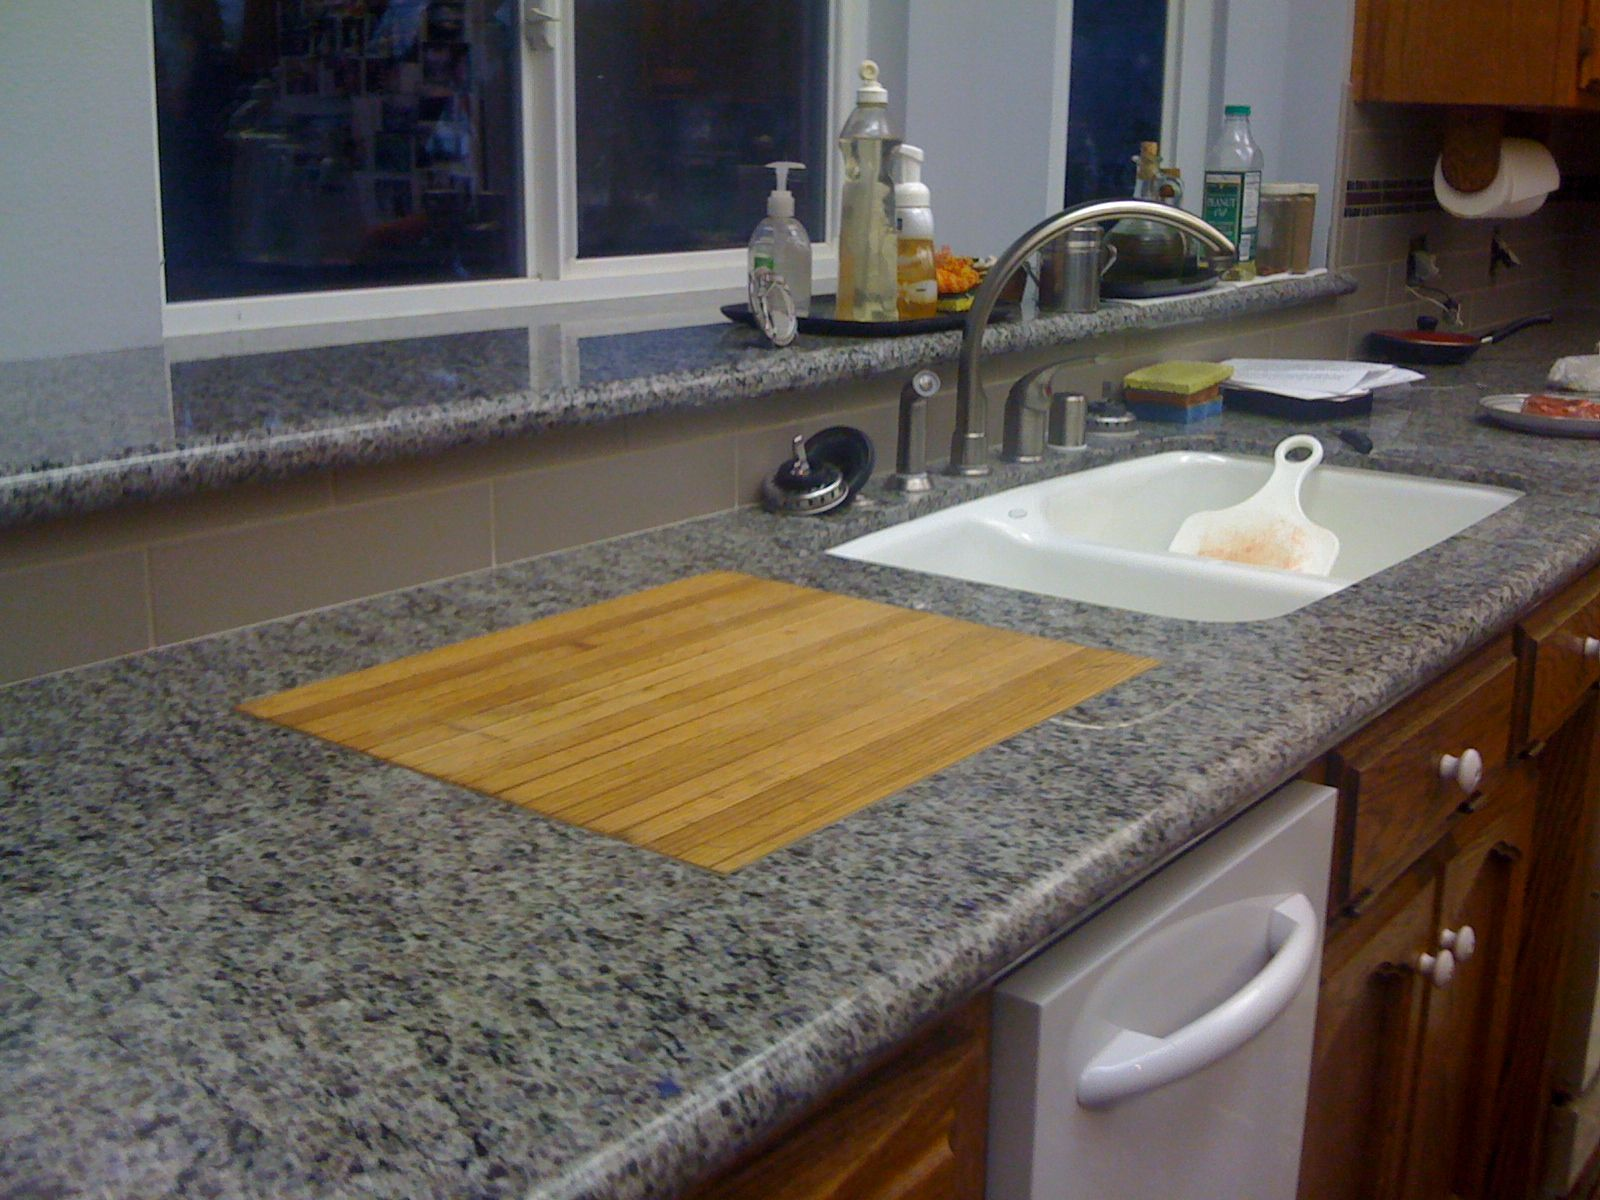 Granite Countertop With Wood Cutting Board Mounted Flush In The Stone